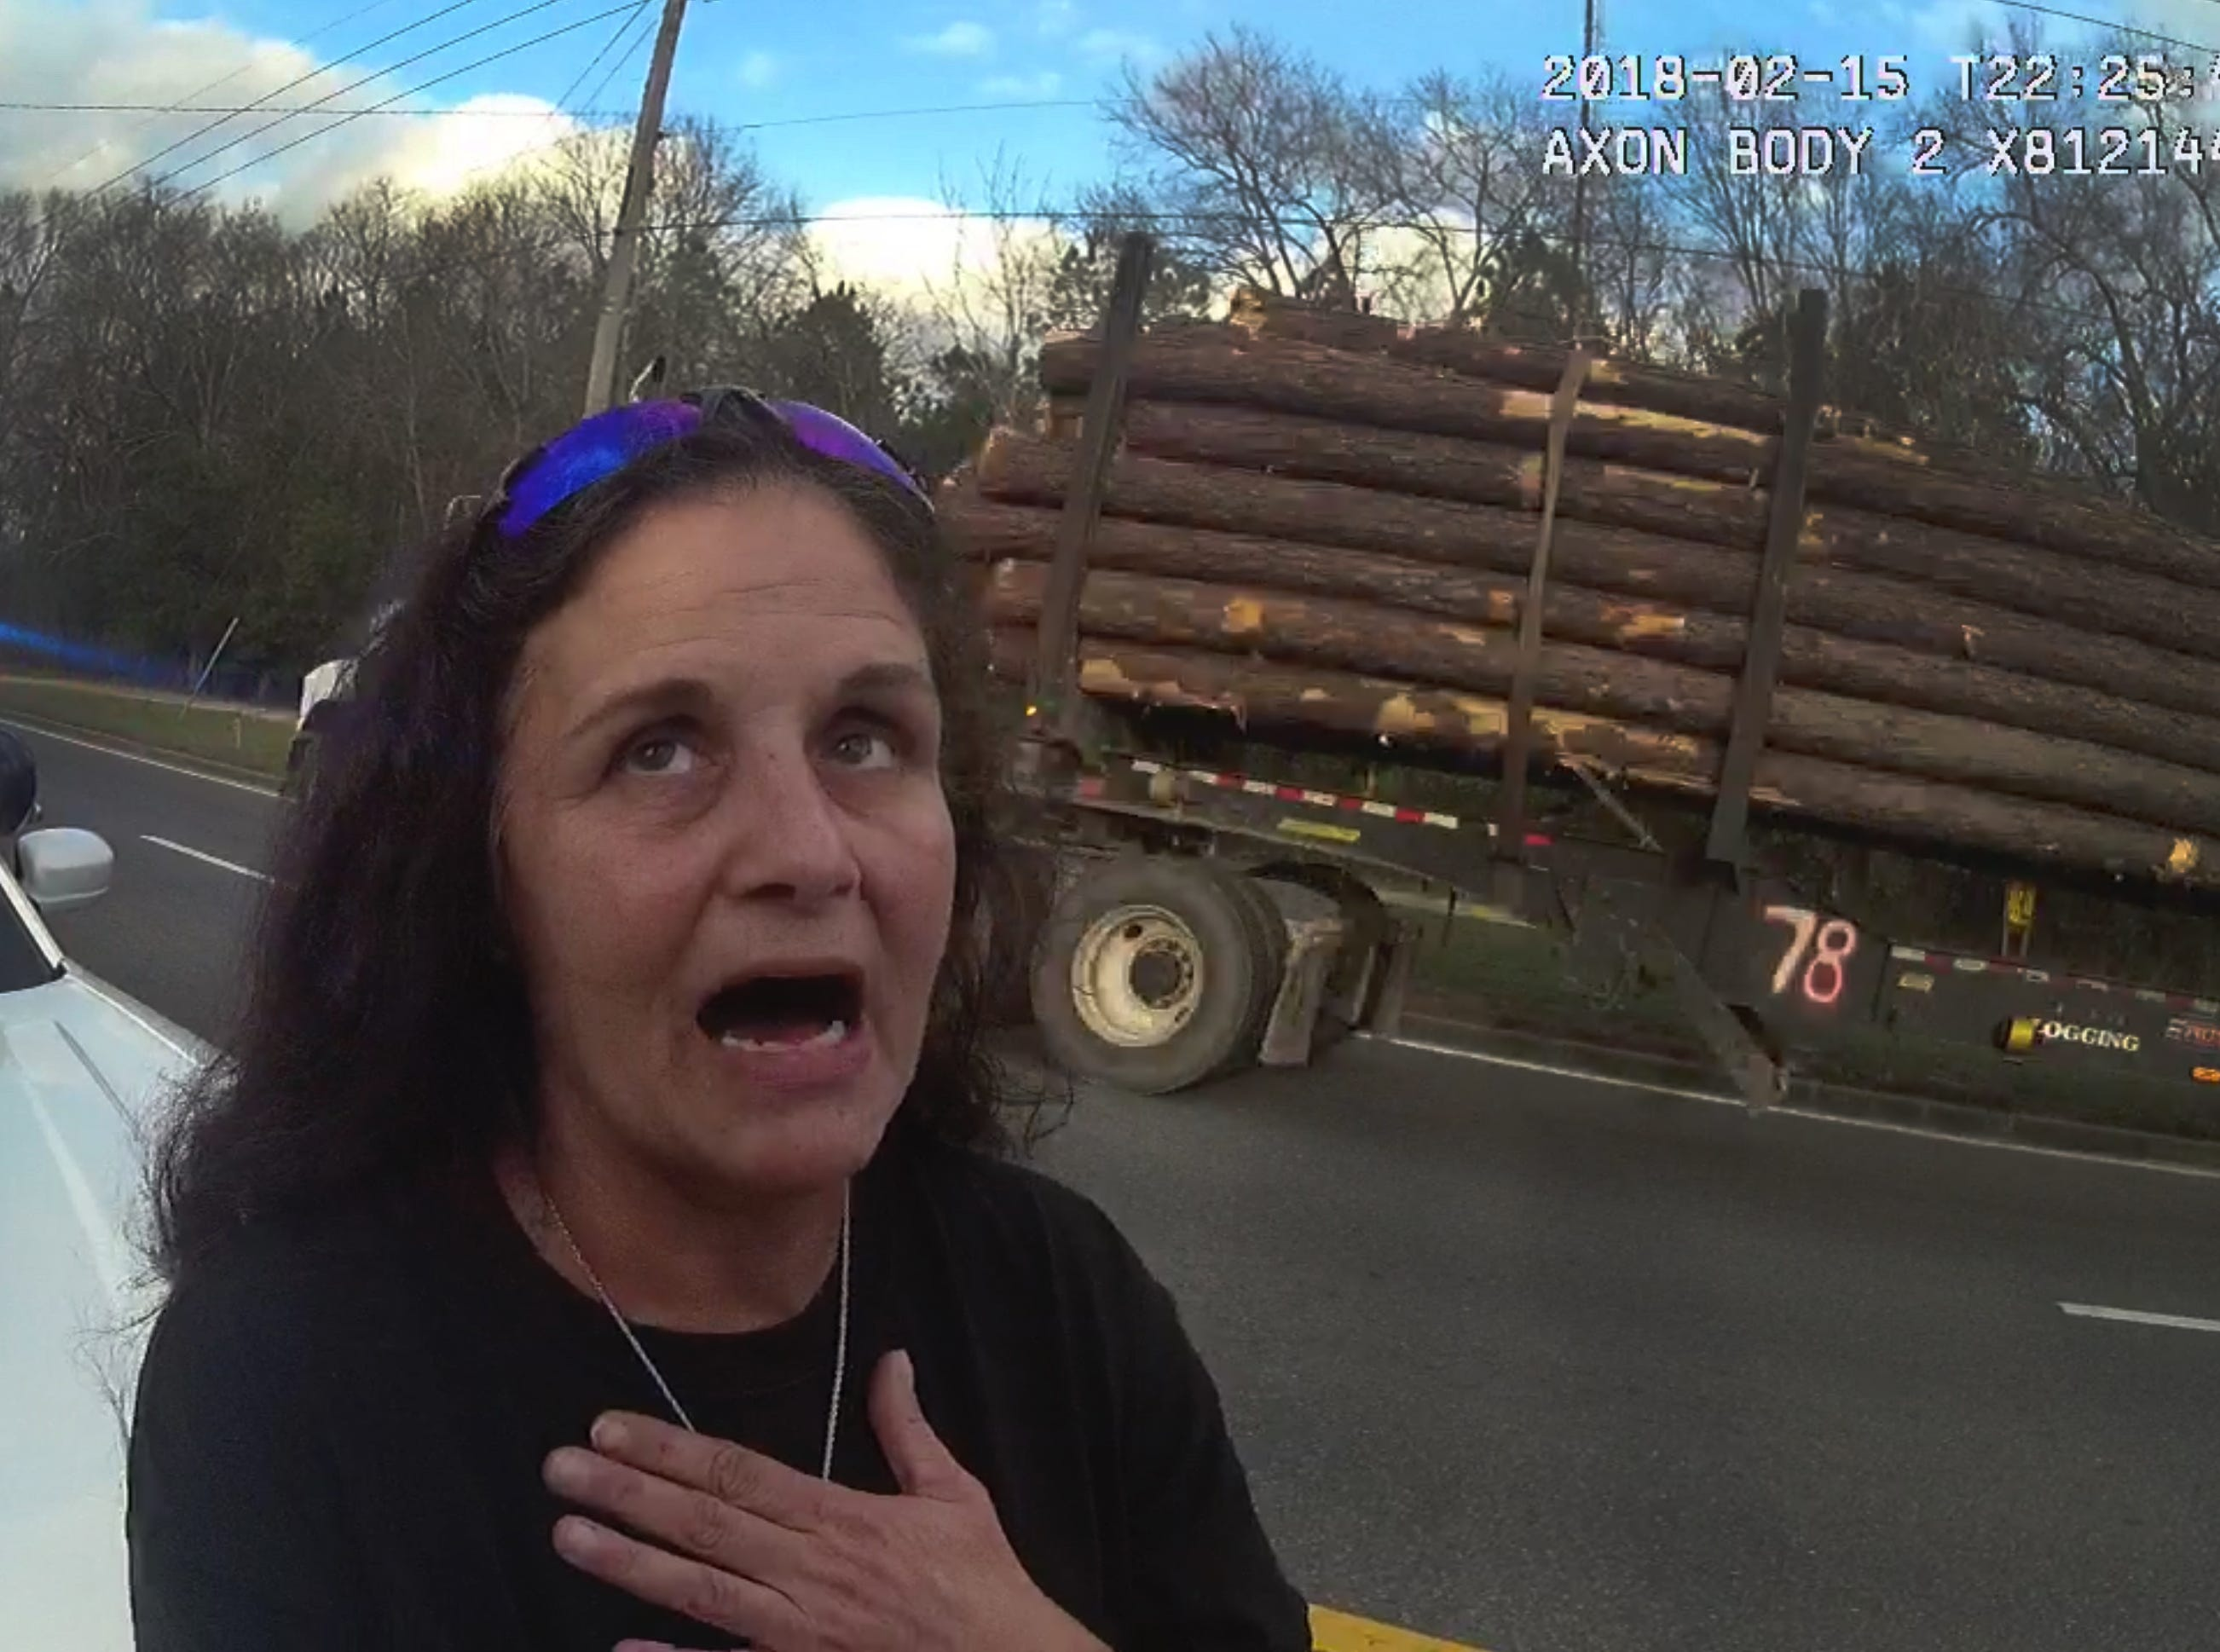 Teresa Odom reacts in shock as Deputy Zachary Wester says he found drugs in her truck during a traffic stop in Cottondale earlier this year.